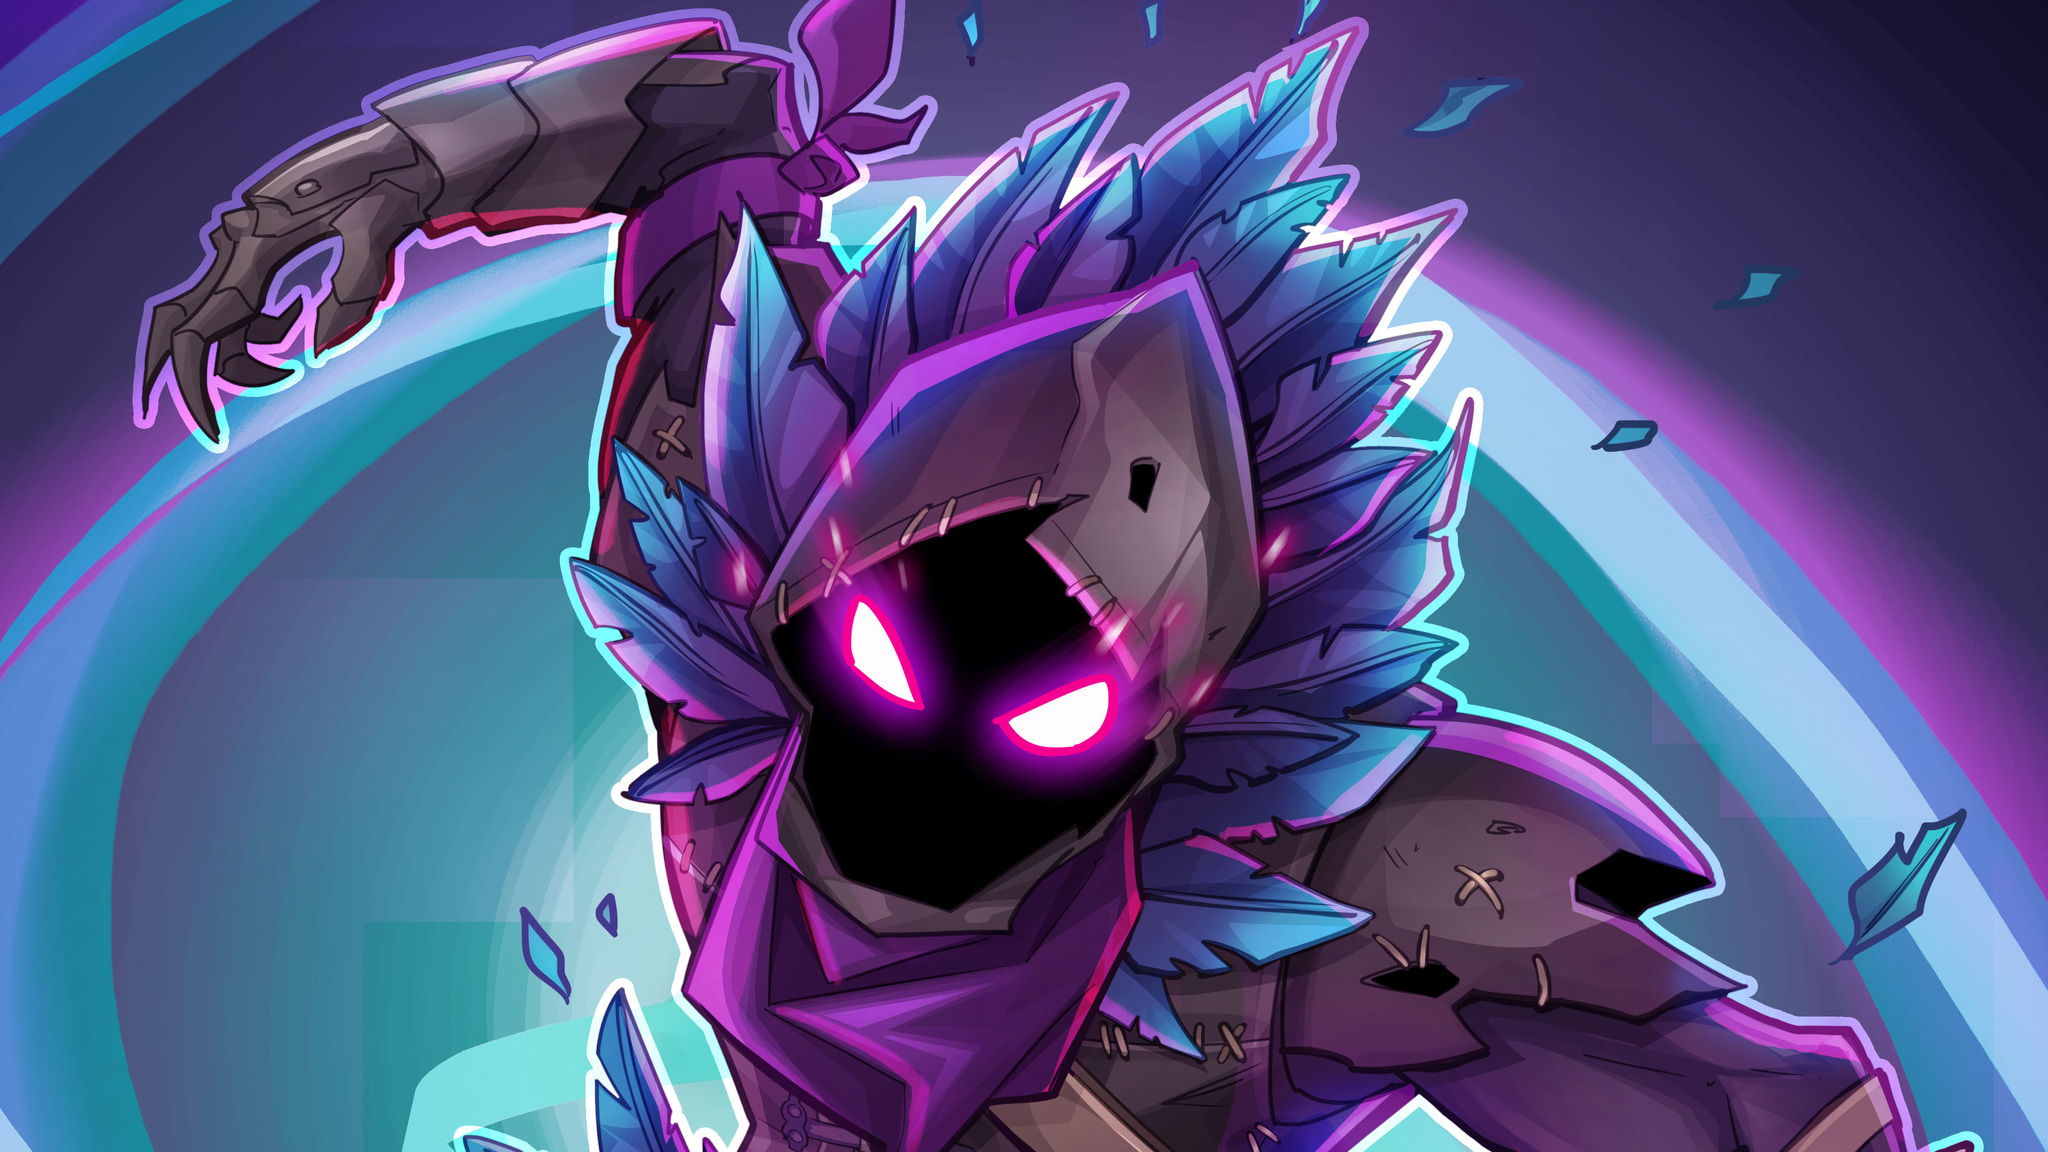 2048x1152 Fortnite Raven Fan Art 2048x1152 Resolution HD